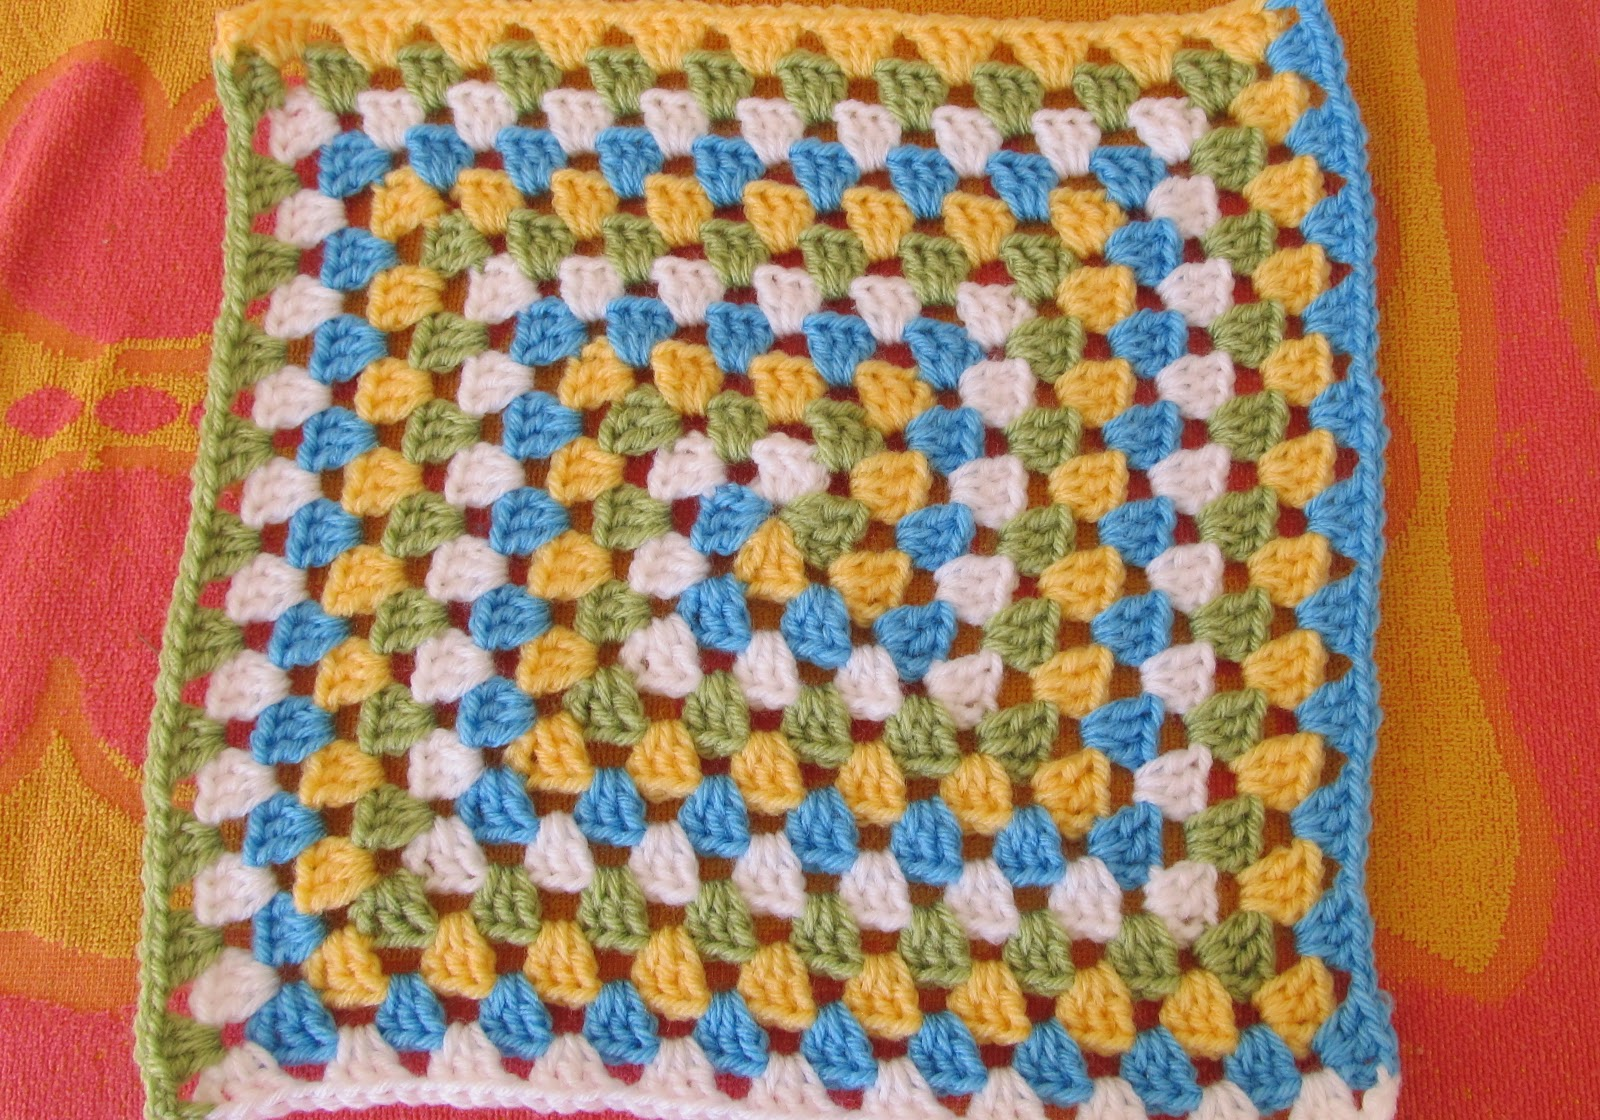 SmoothFox's Spiral Granny Square or Blanket - Free Pattern